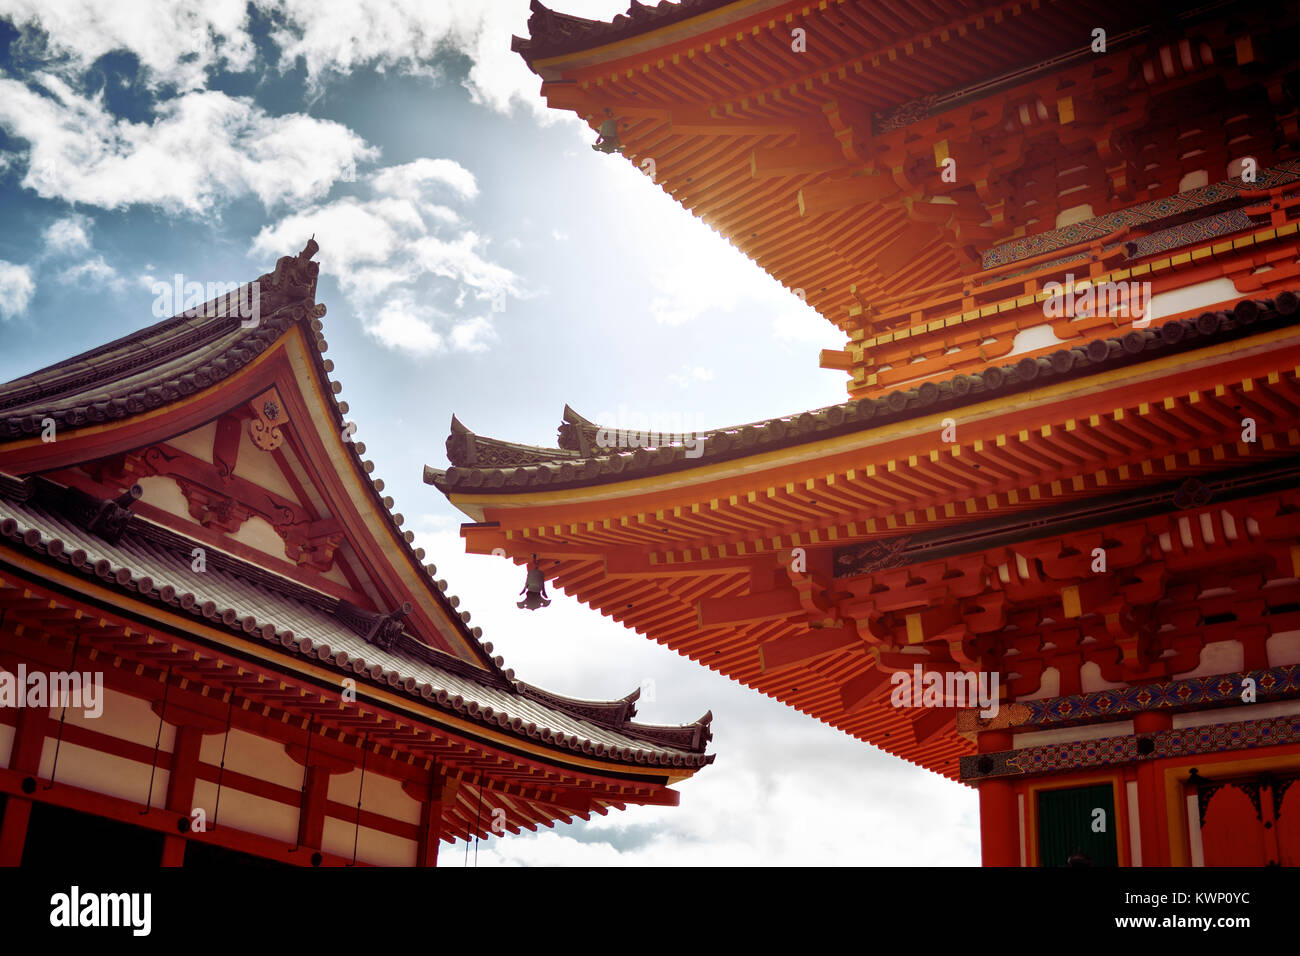 Architectural detail of Sanjunoto bright orange pagoda building at Kiyomizu-dera Buddhist temple in Kyoto, Japan - Stock Image